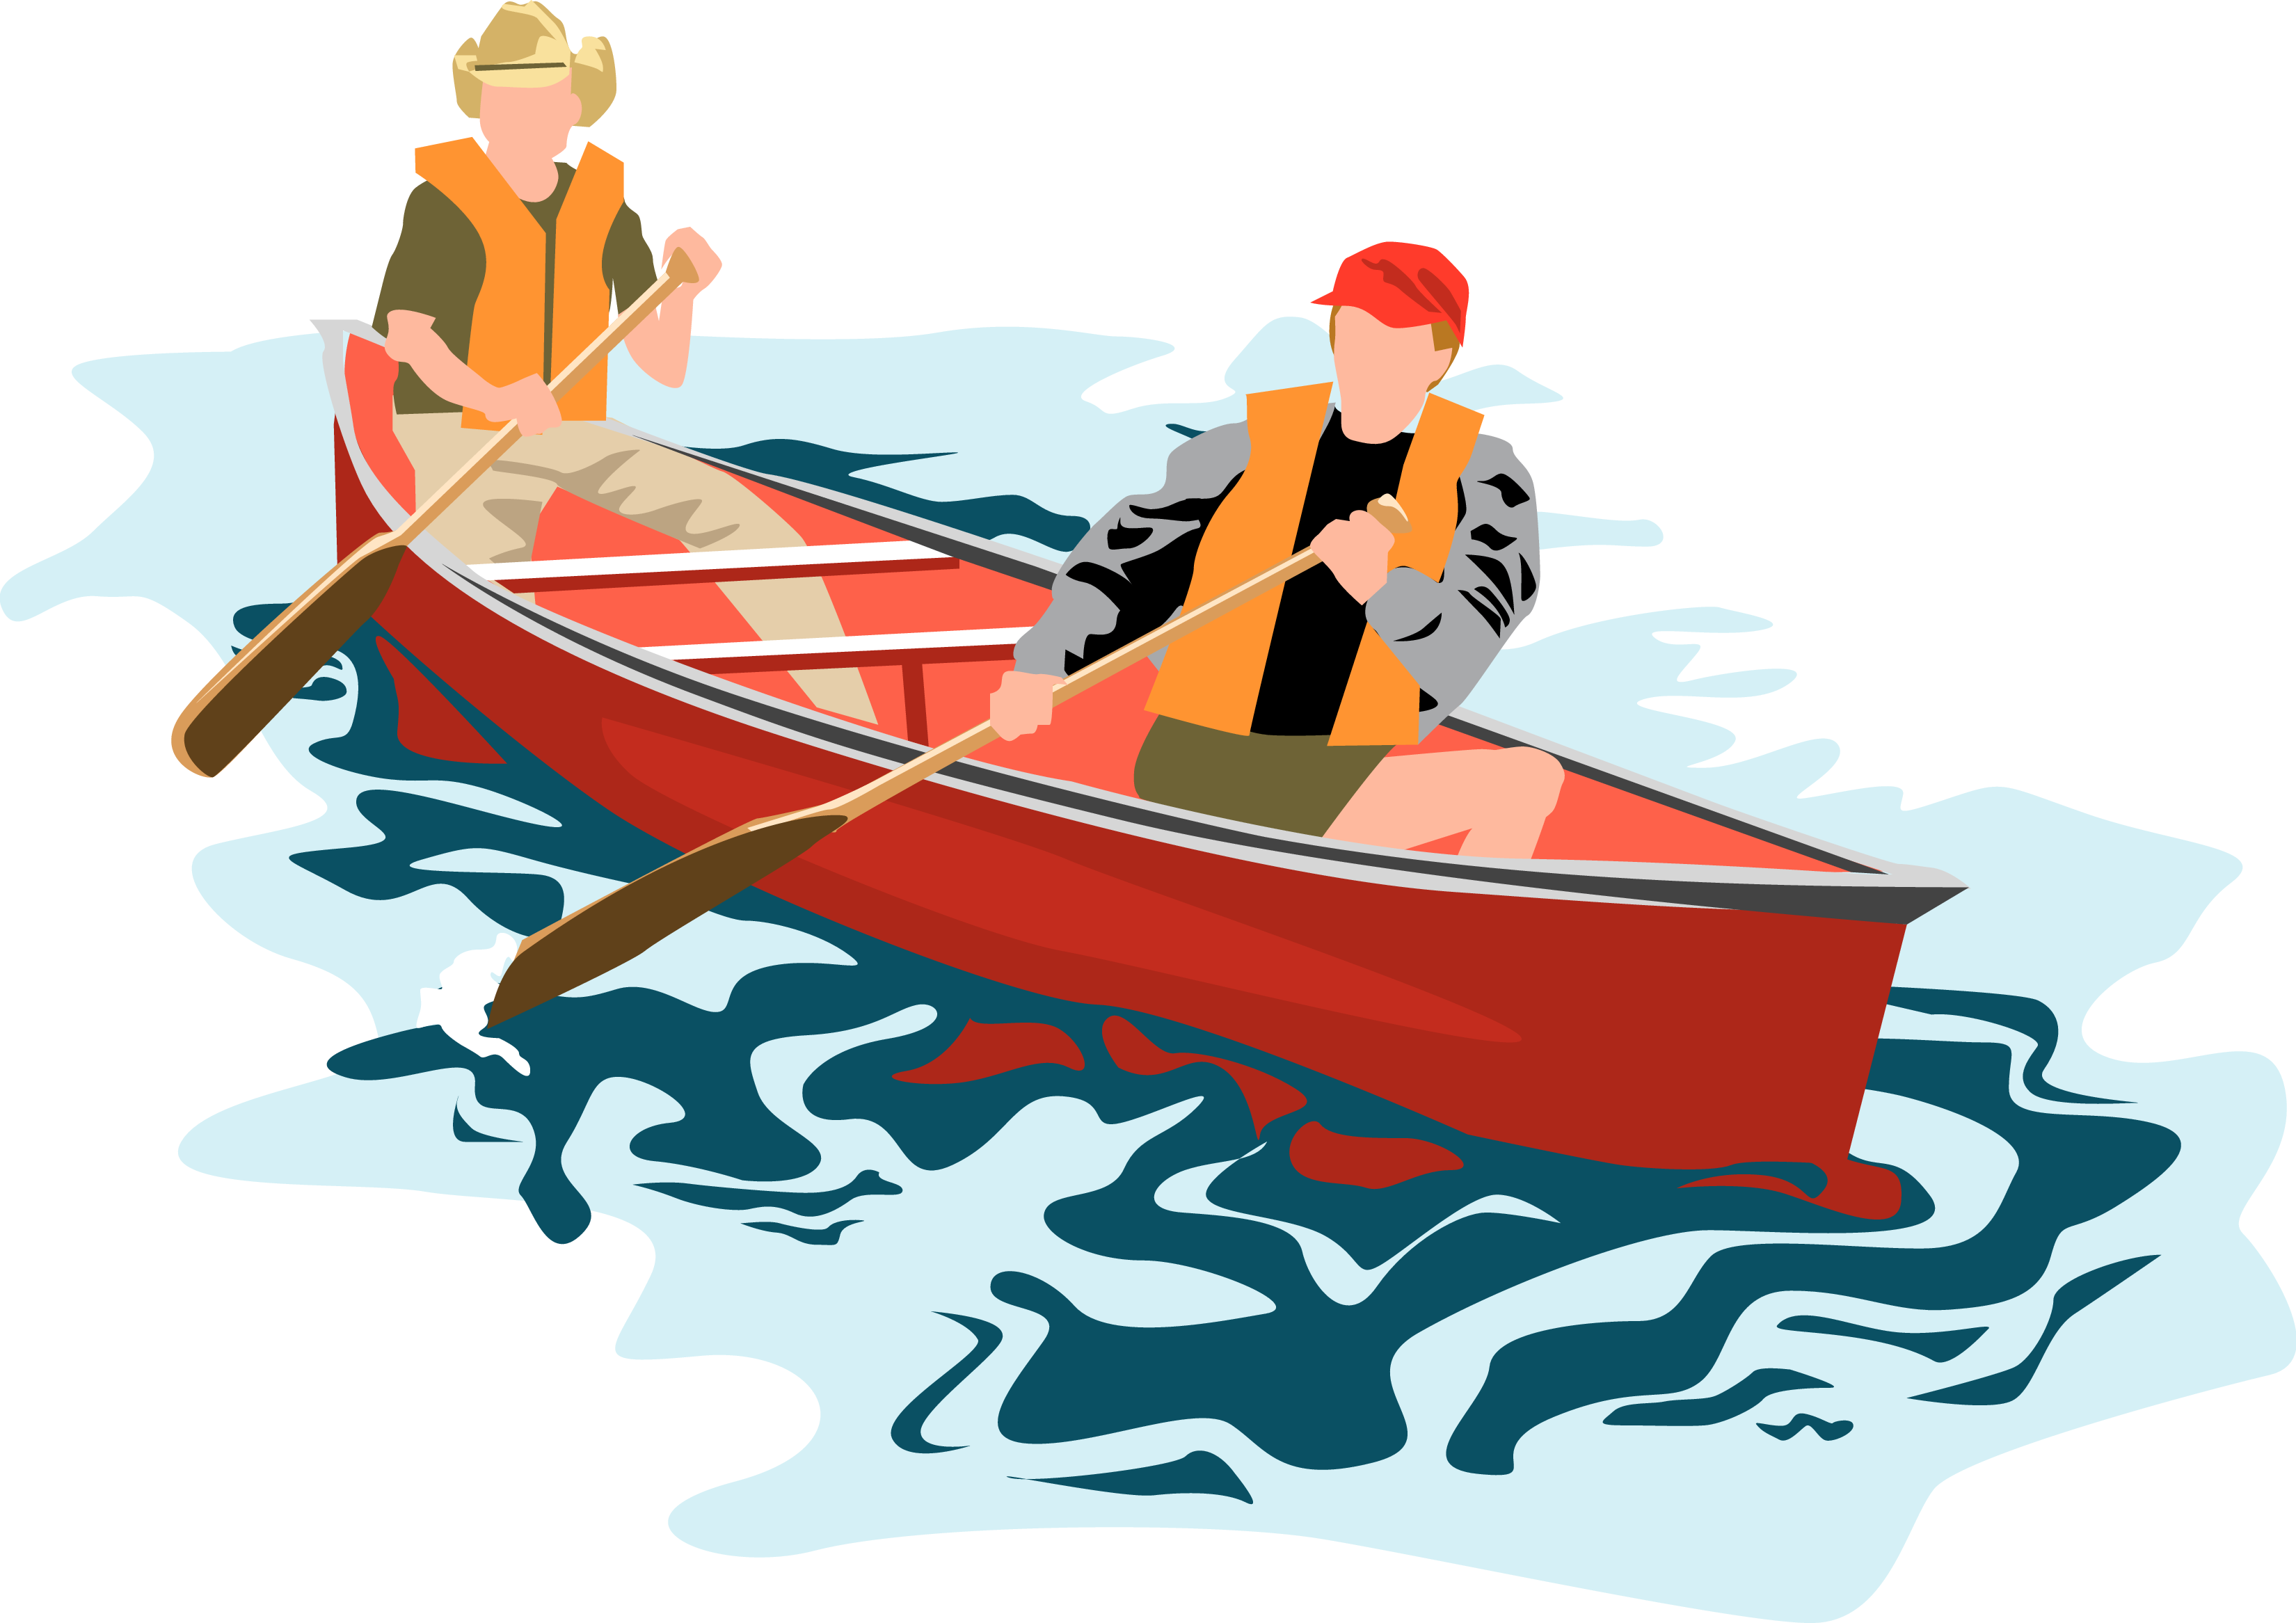 Download wallpaper canoe full. Kayak clipart pirogue